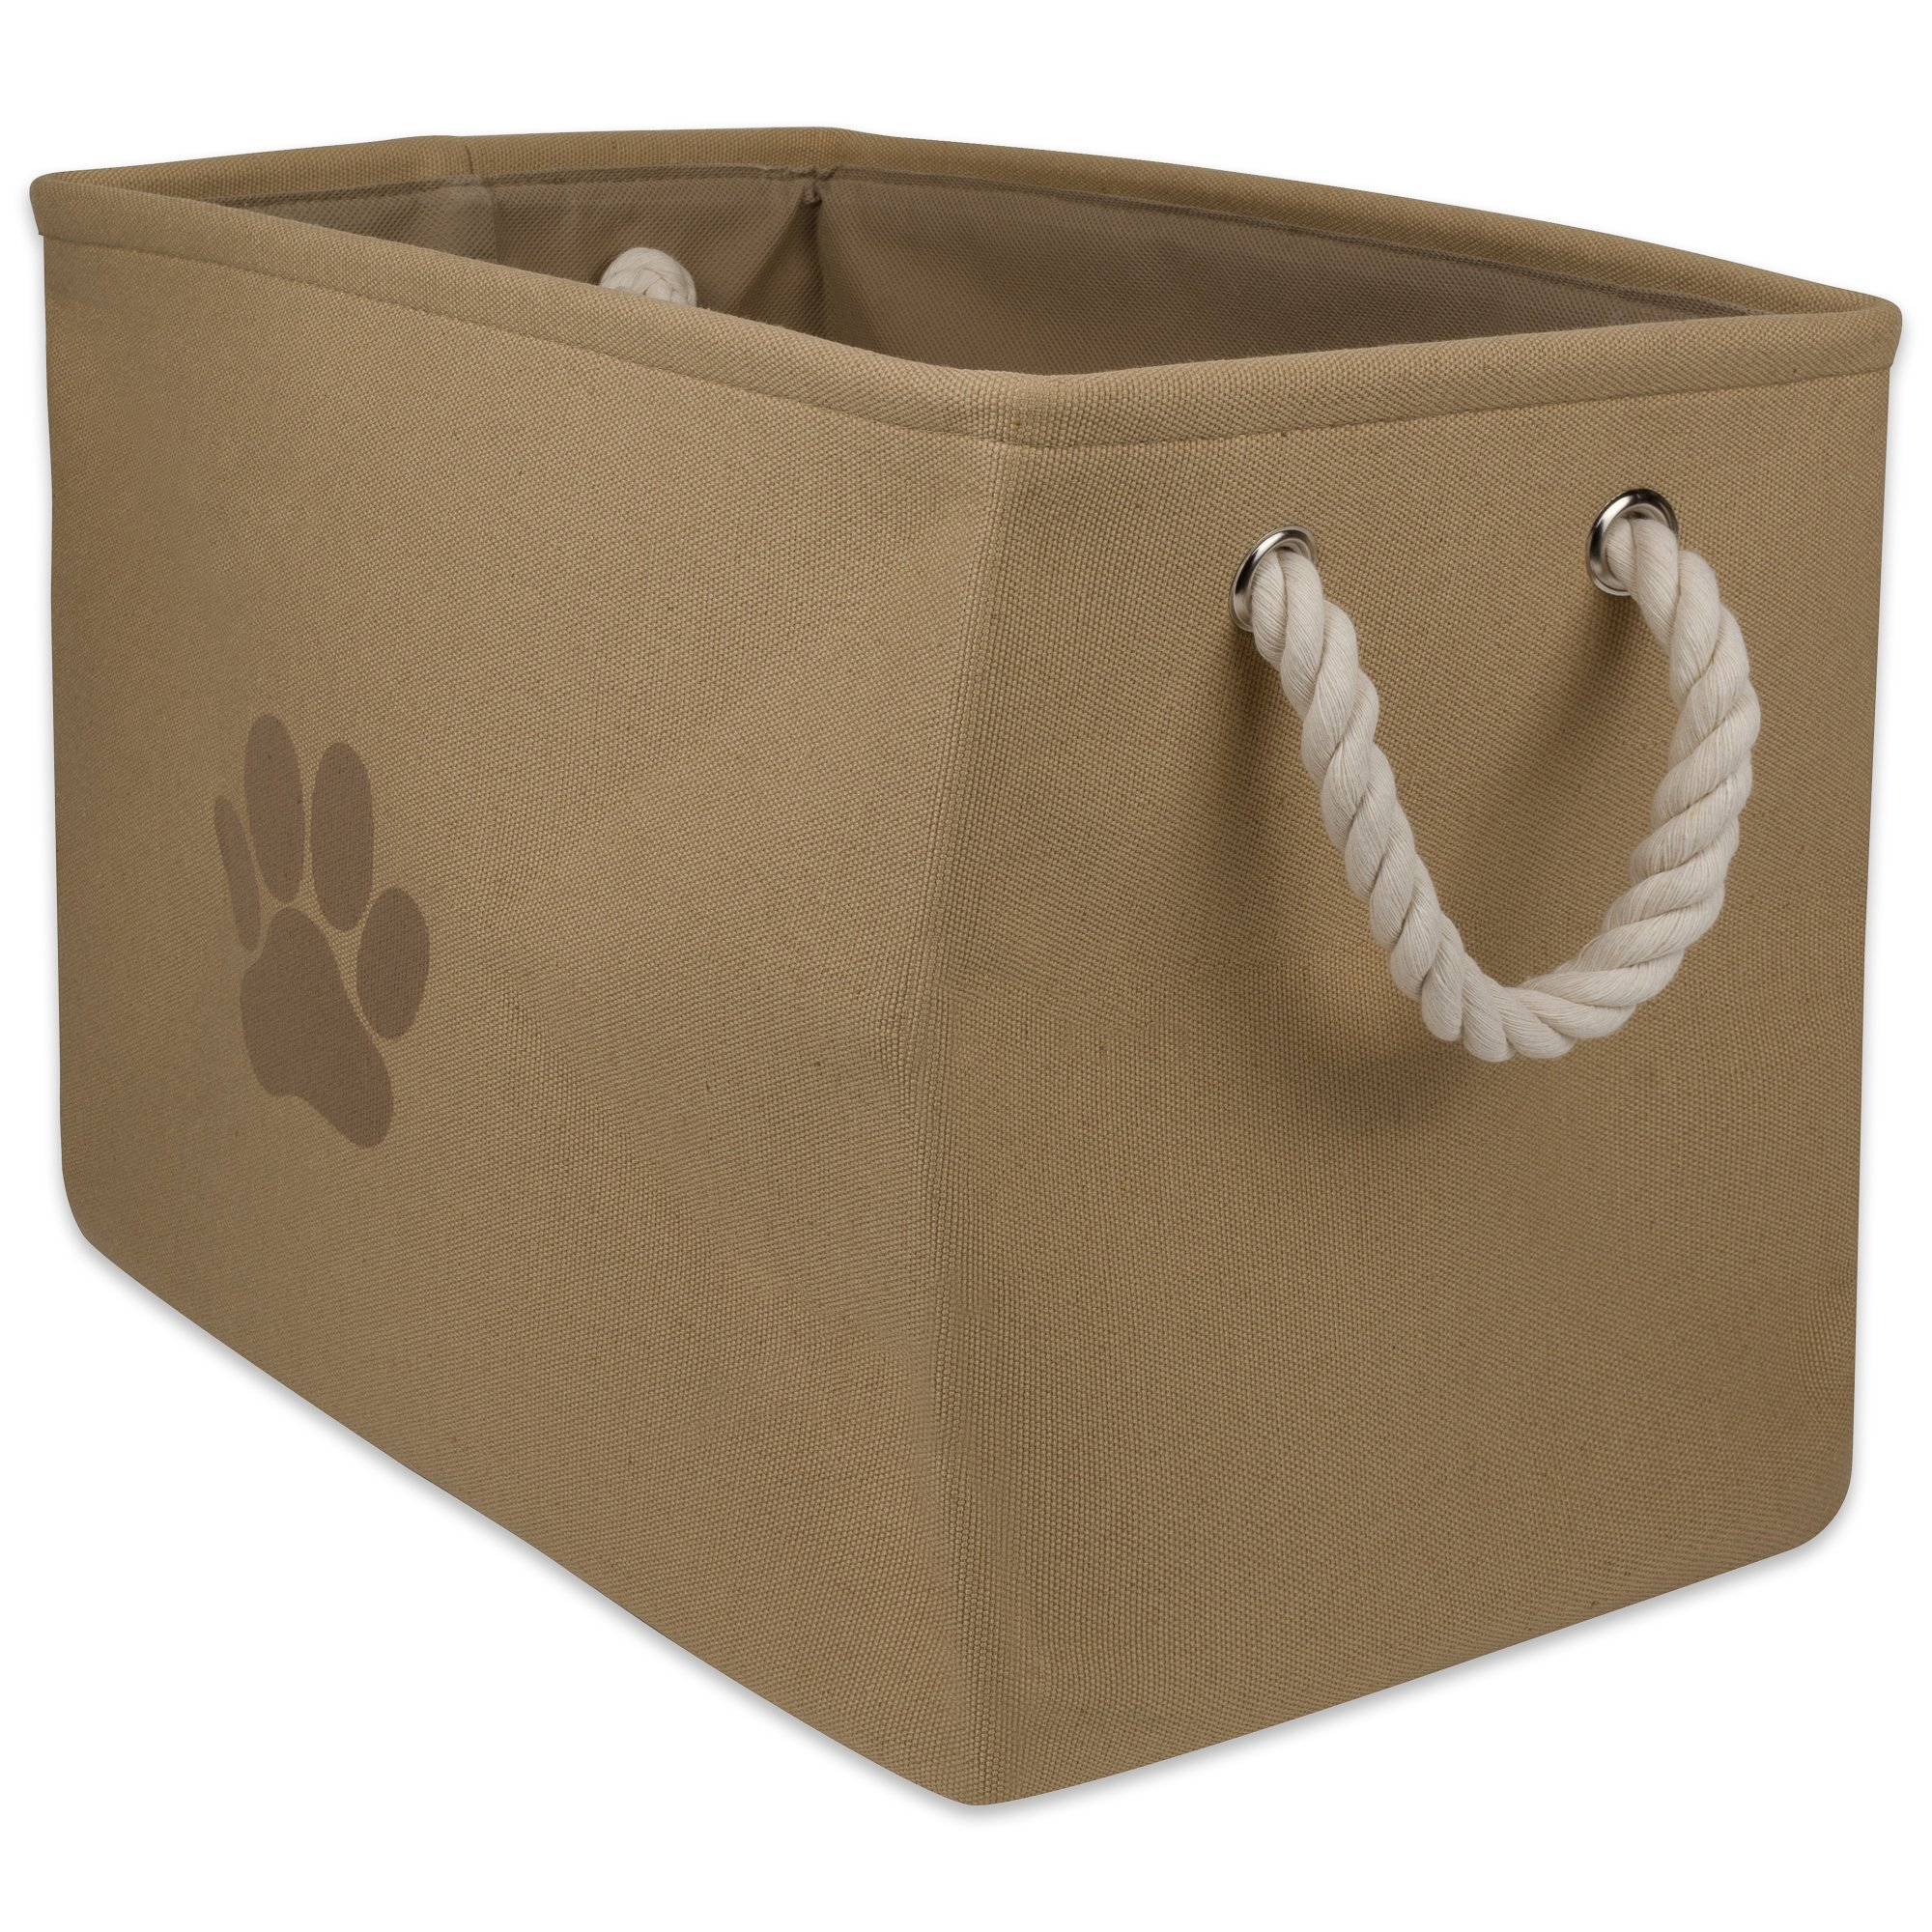 Bone Dry DII Medium Rectangle Pet Toy and Accessory Storage Bin, 16x10x12, Collapsible Organizer Storage Basket for Home Décor, Pet Toy, Blankets, Leashes and Food-Taupe Paw Print